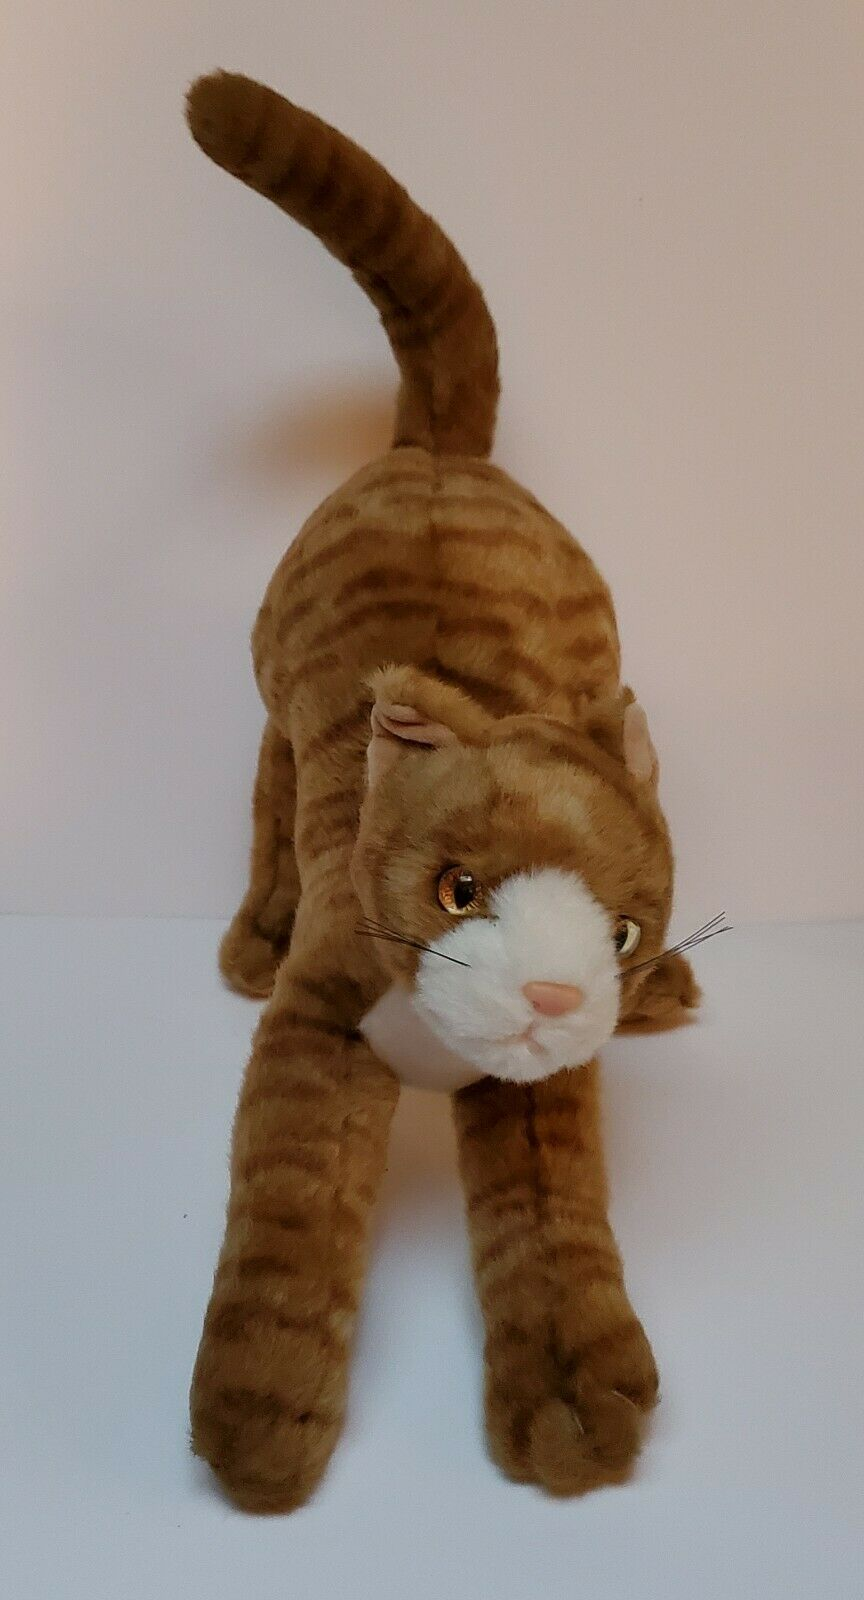 TY Classic Stretch Tabby Cat 1999 Stuffed Animal Plush Toy Ginger Striped Kitten